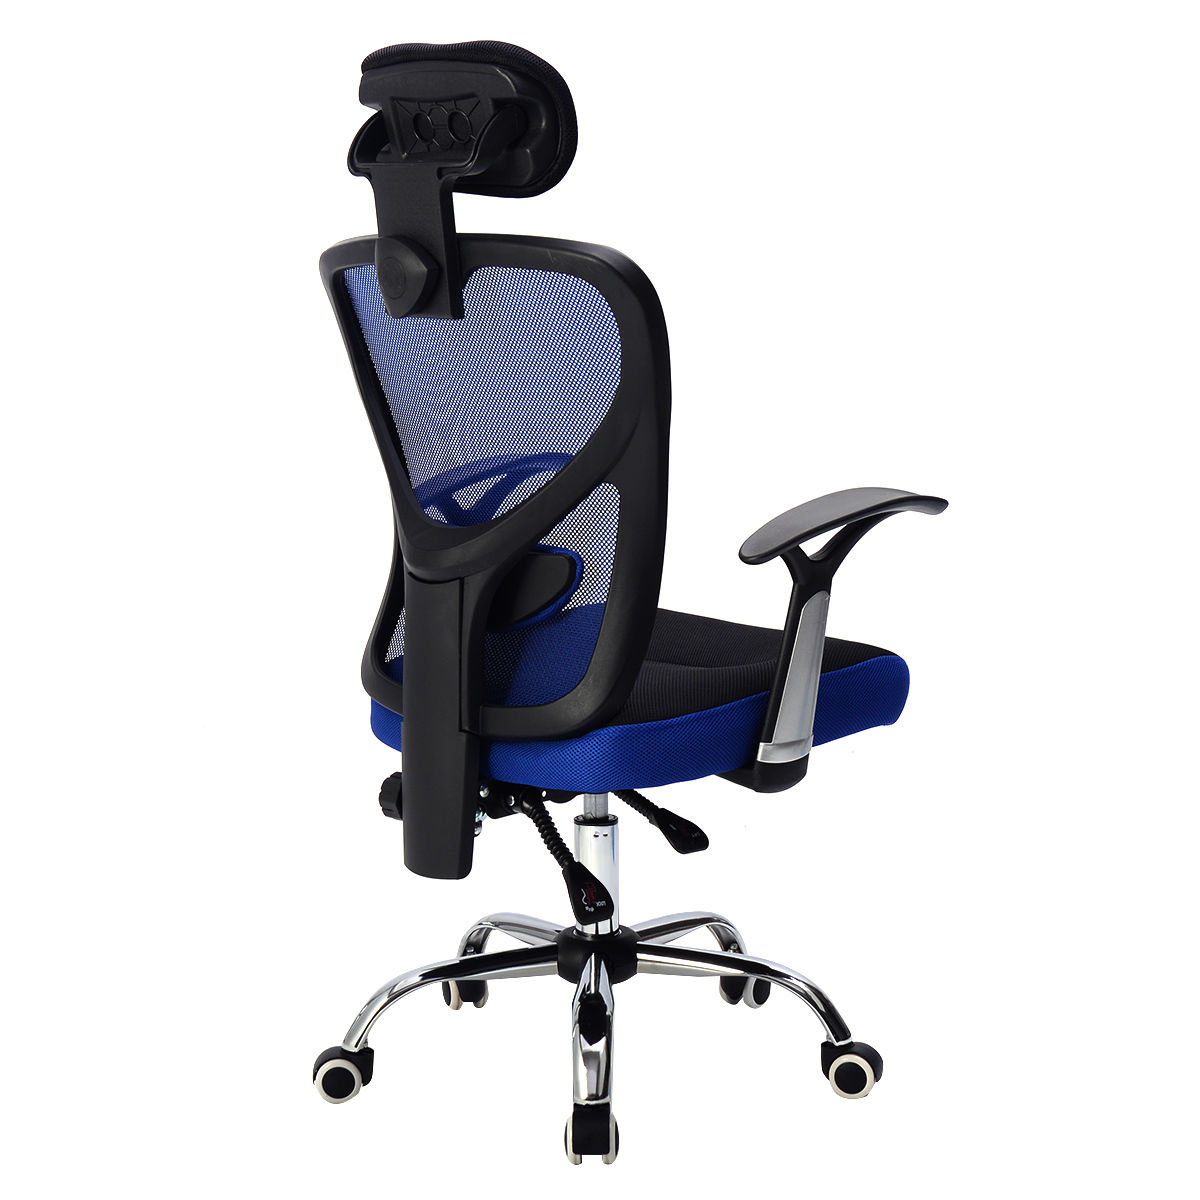 New Office Mesh Chair Executive Lift 360° Computer Desk High Back With Head Rest